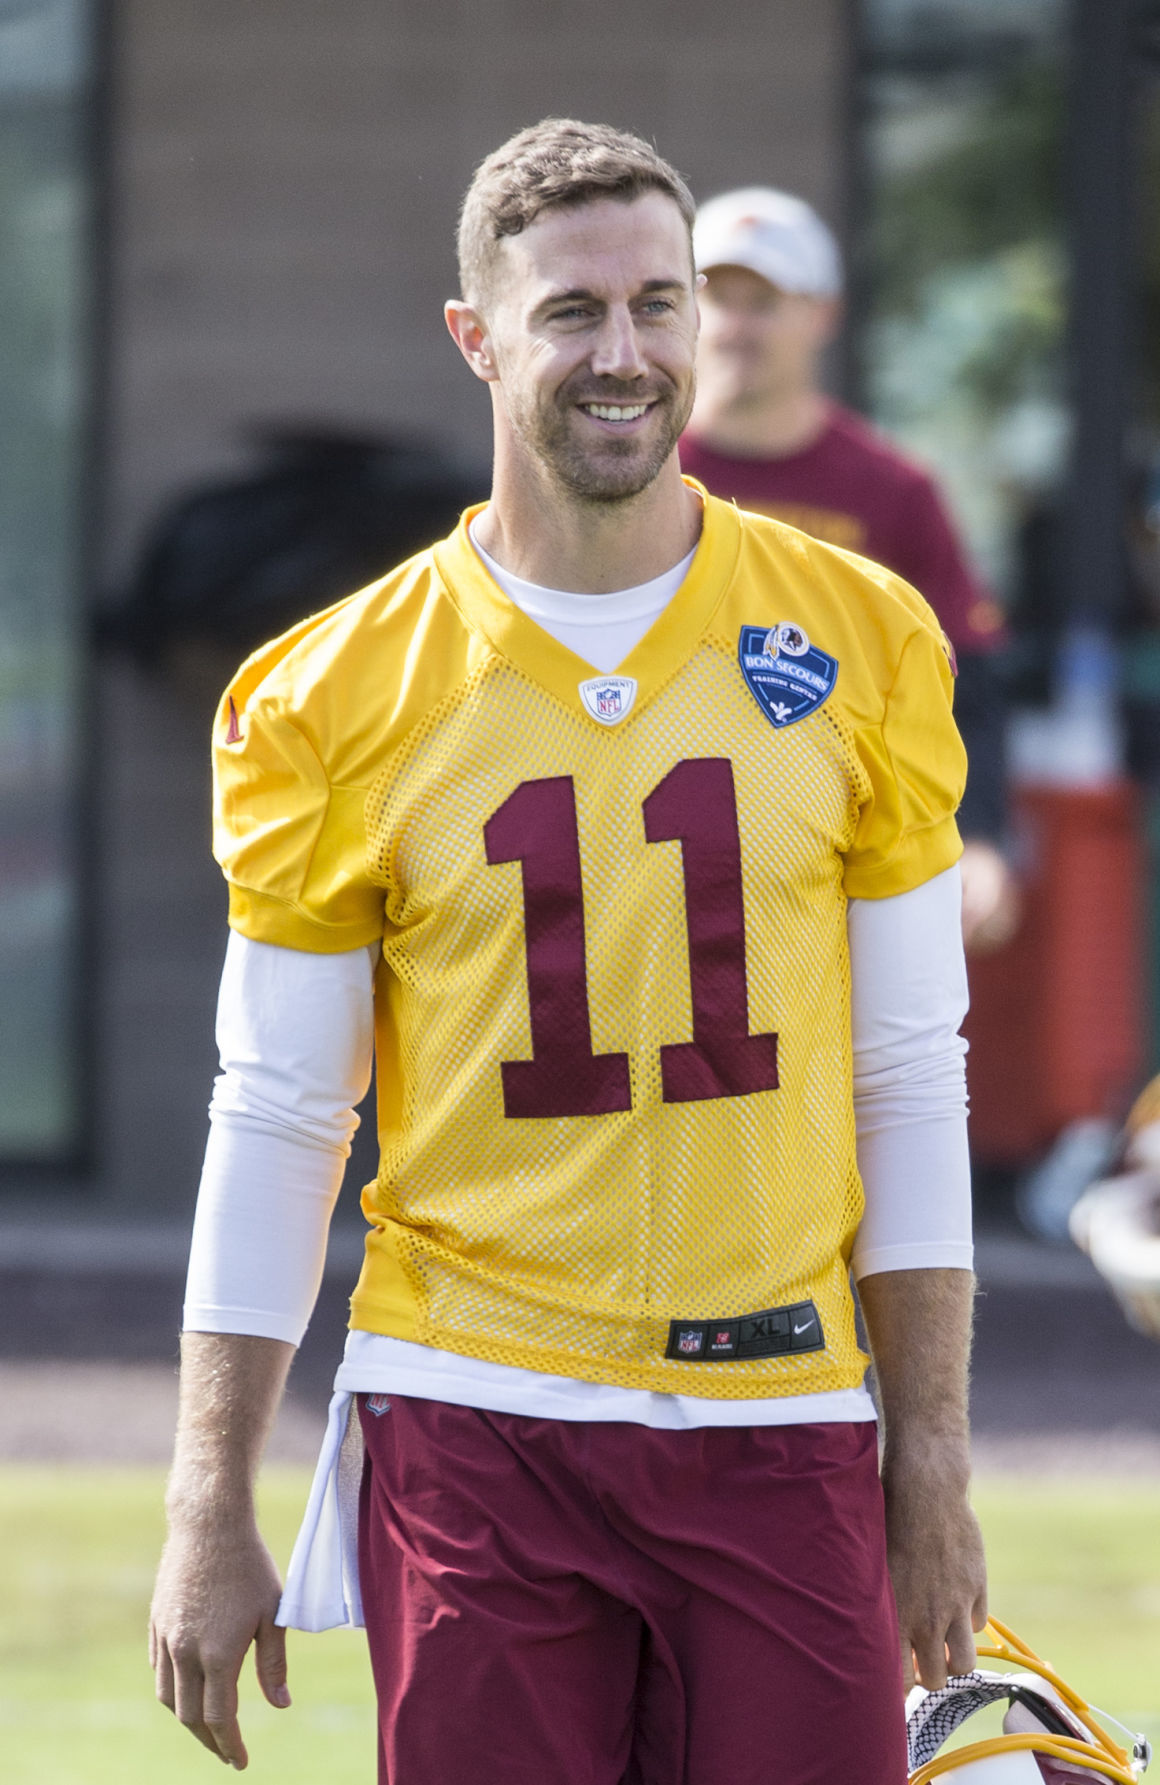 First day of Redskins training camp